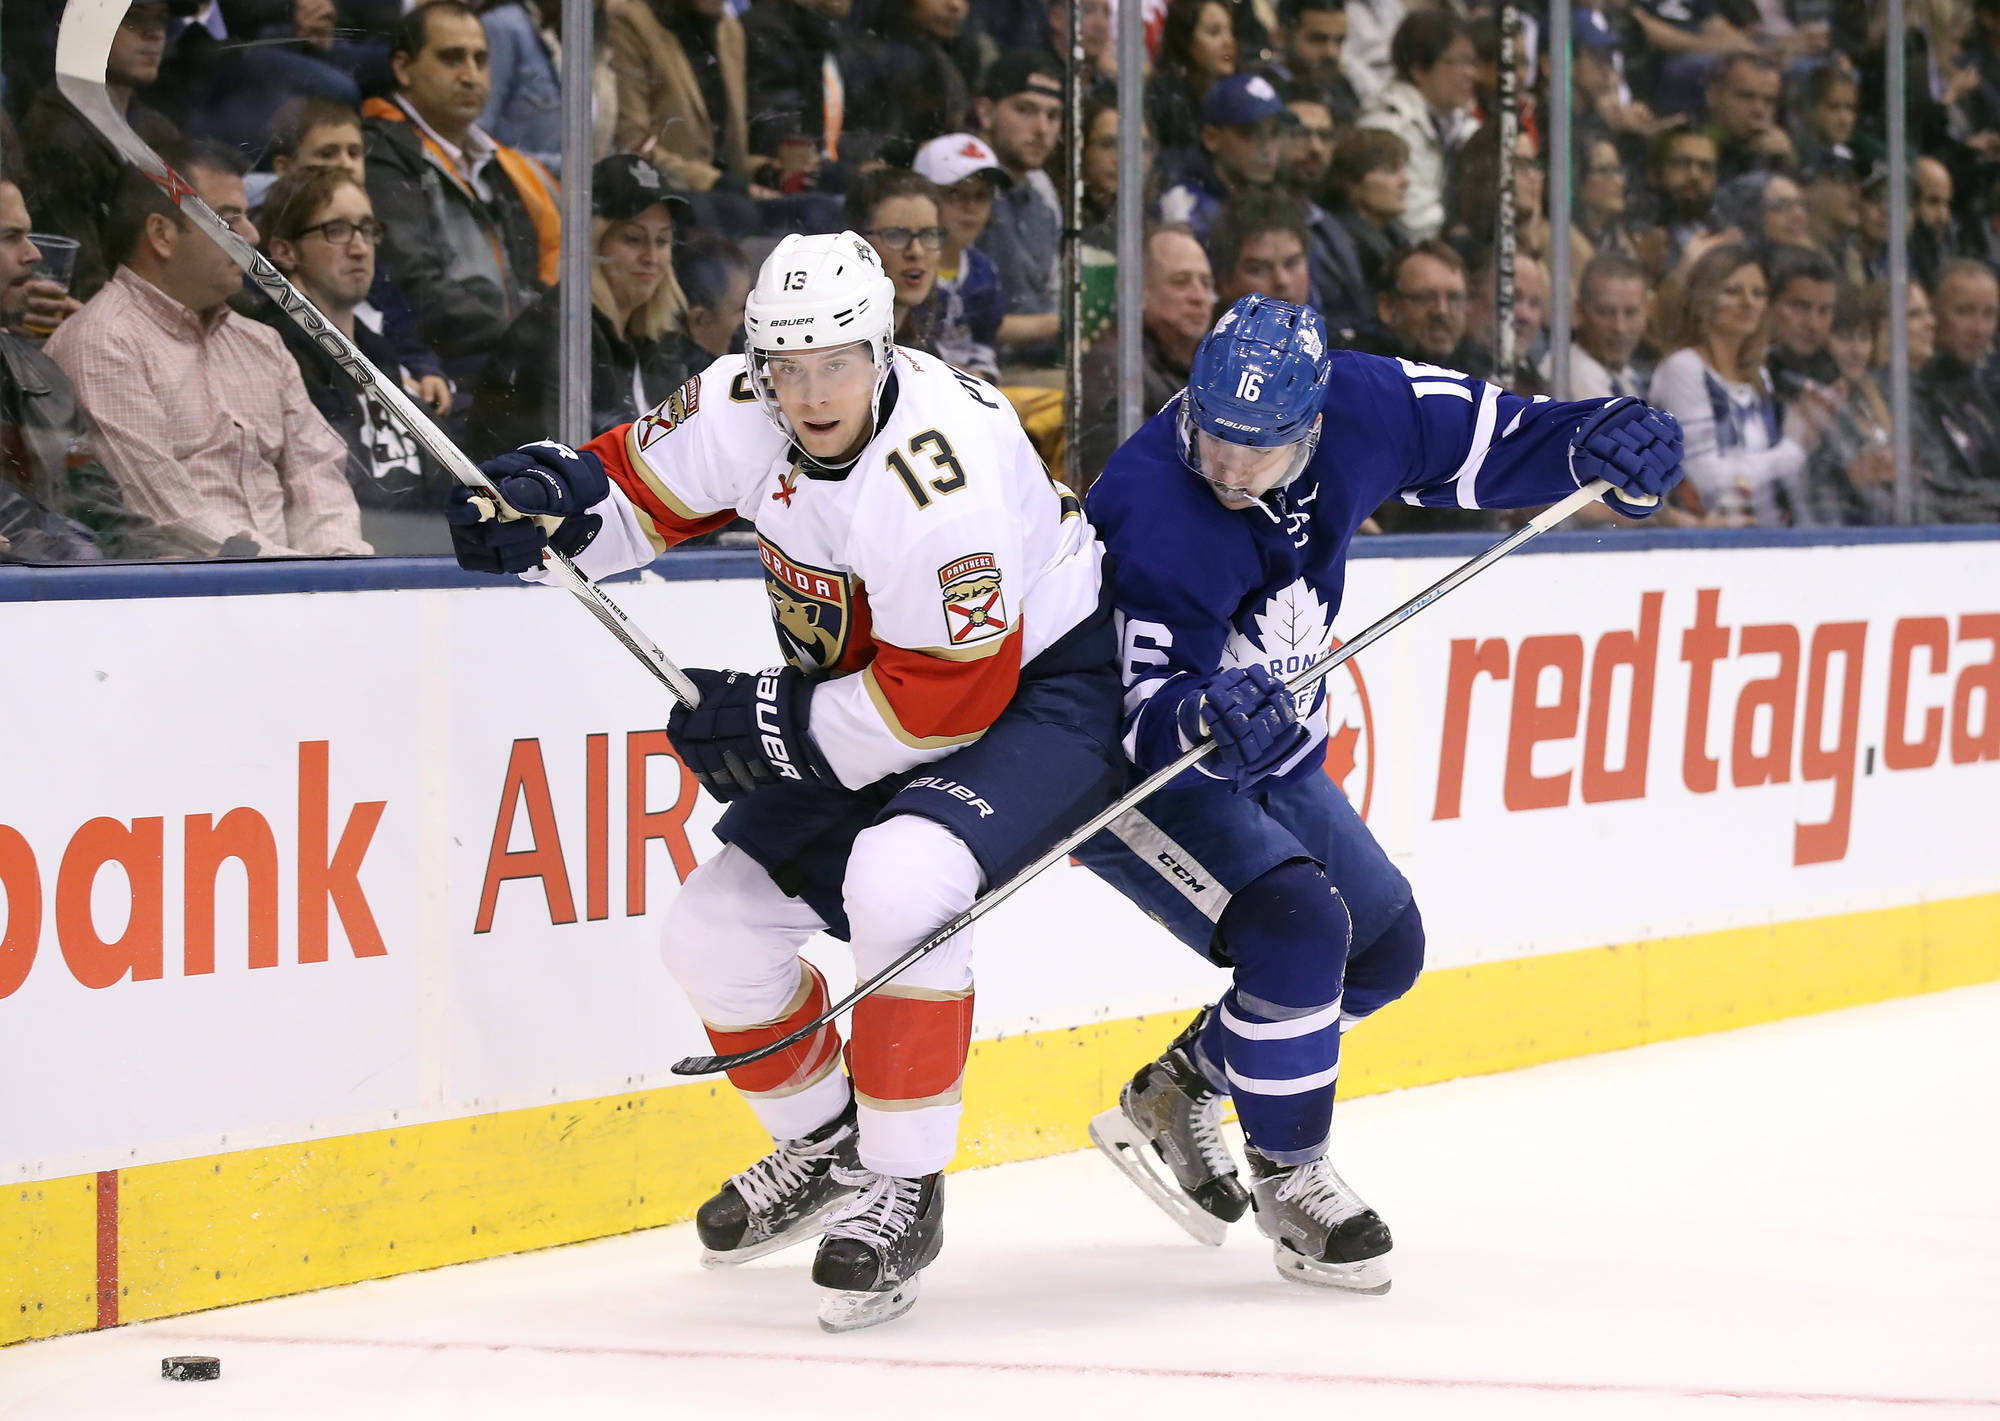 Andersen and Marner lead Leafs to much need win